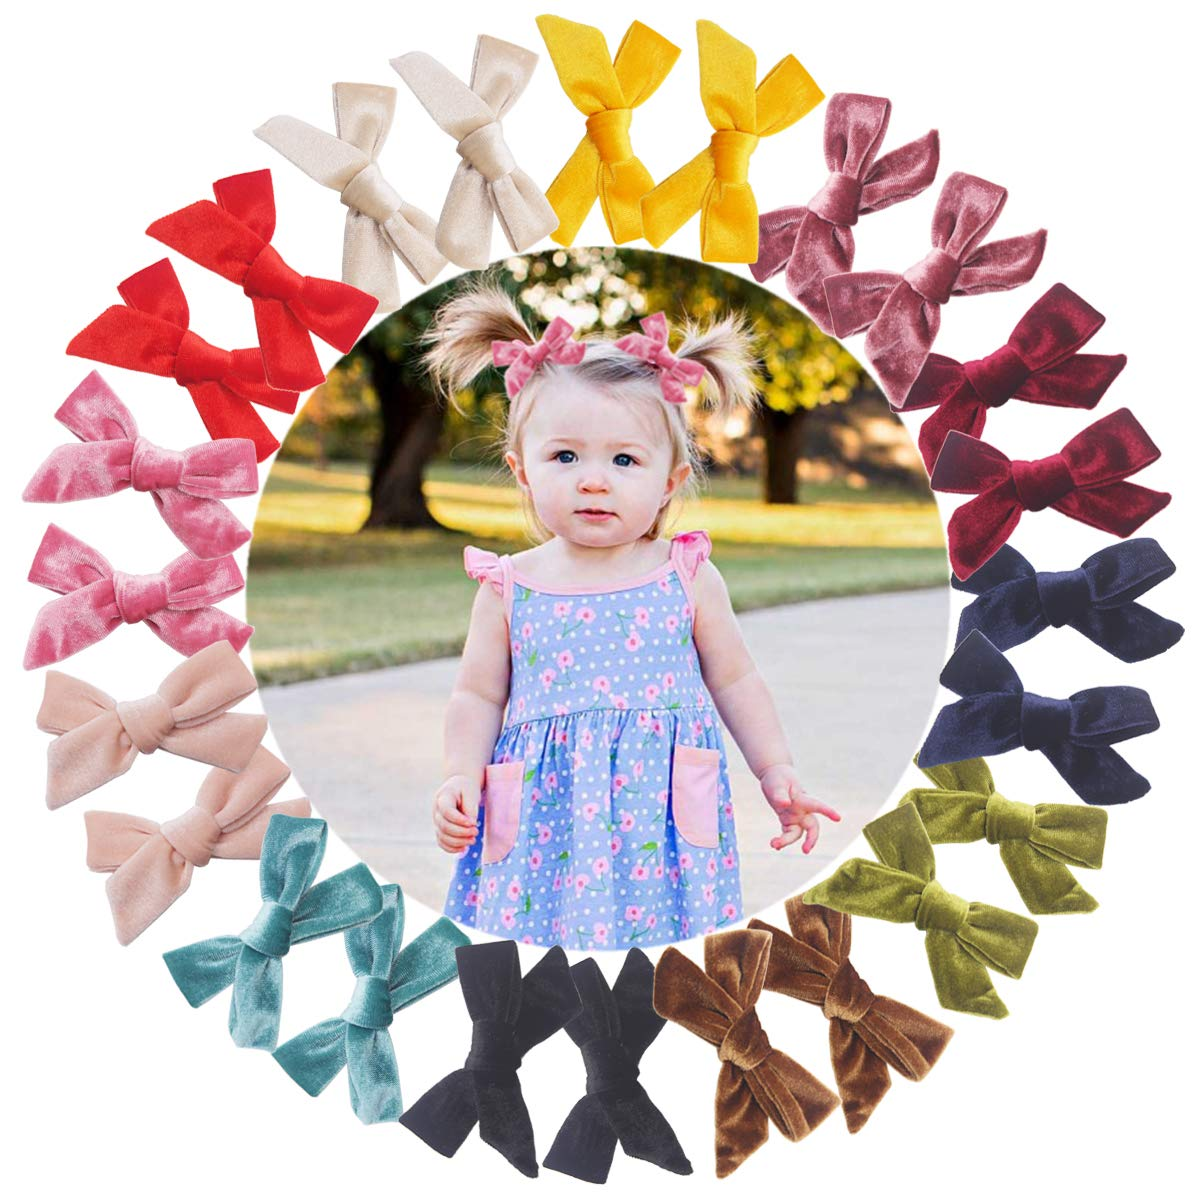 24PCS 12Pairs Fixed price for sale Velvet Hair Bows Baby Clips 4Inch Indefinitely Girls